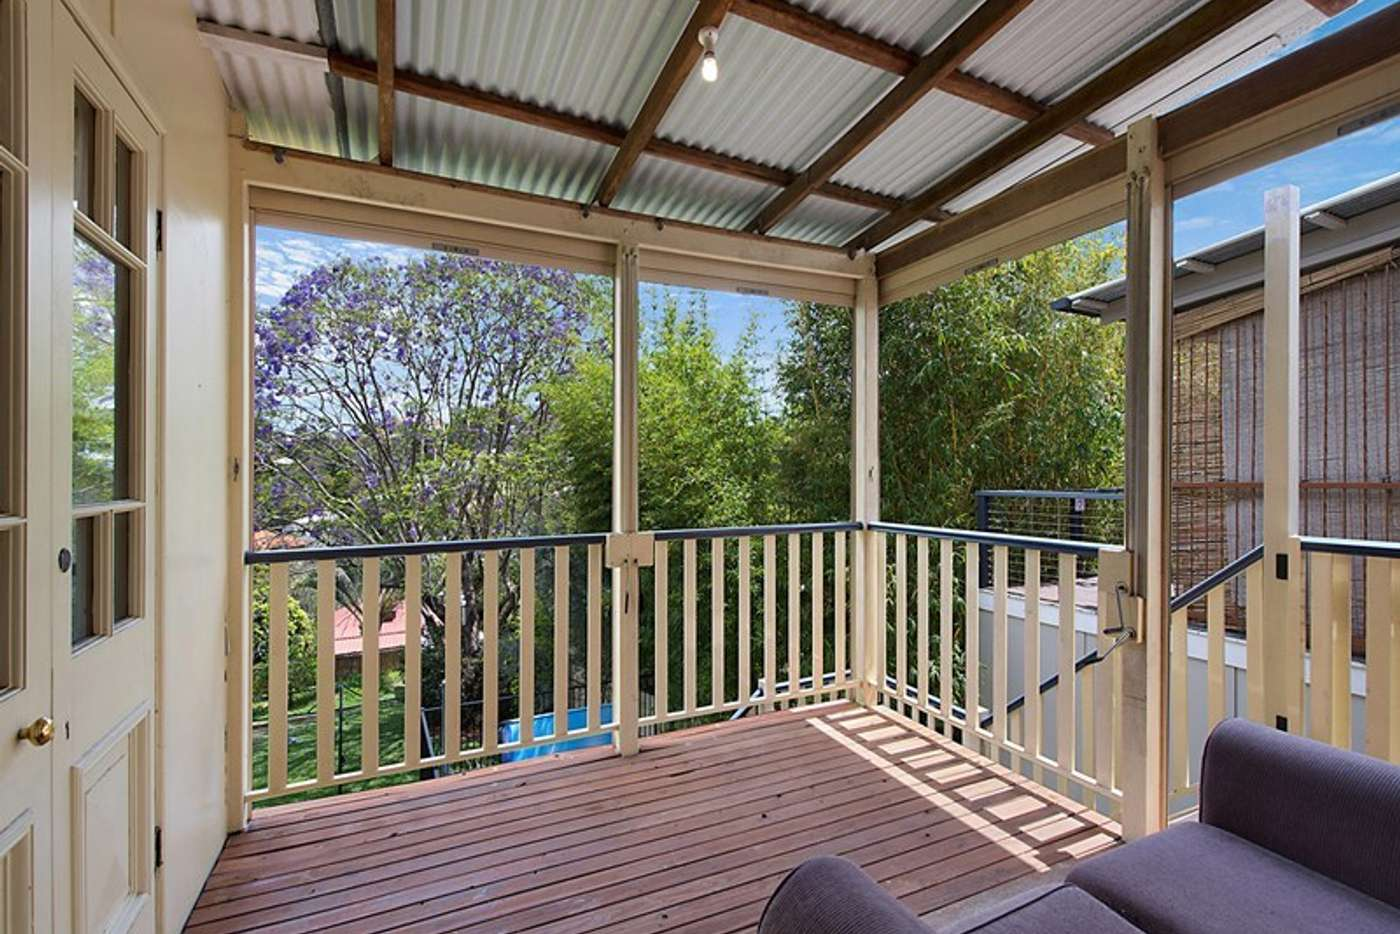 Seventh view of Homely house listing, 268 Enoggera Road, Newmarket QLD 4051